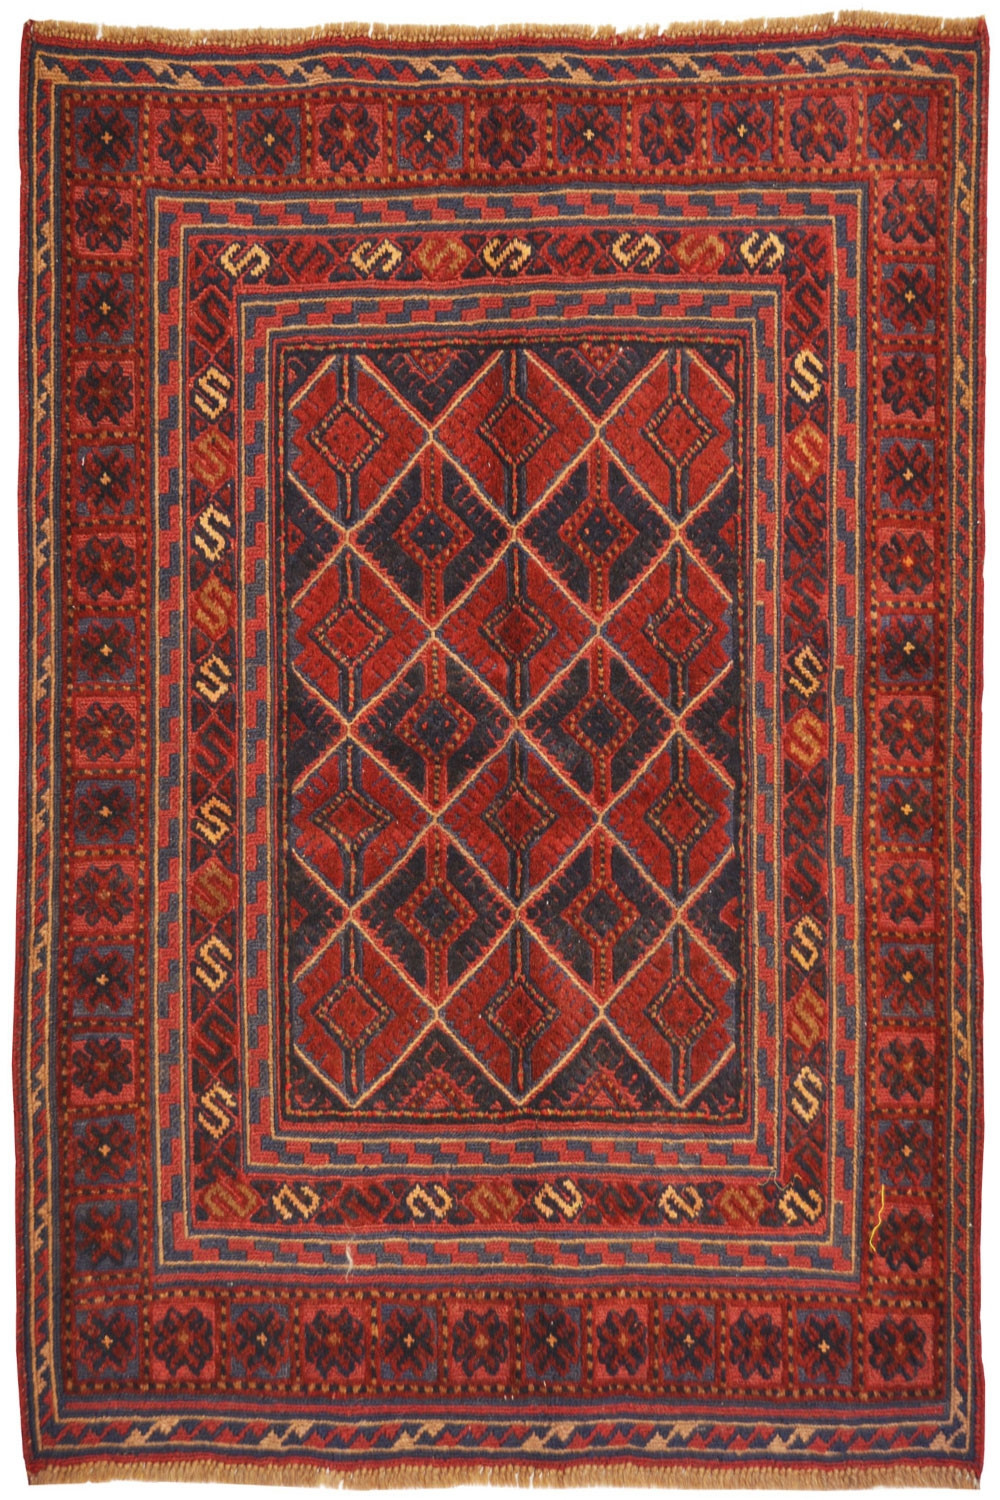 Purchase Goz Rustic Traditional Kilim Area Rug From Rugs